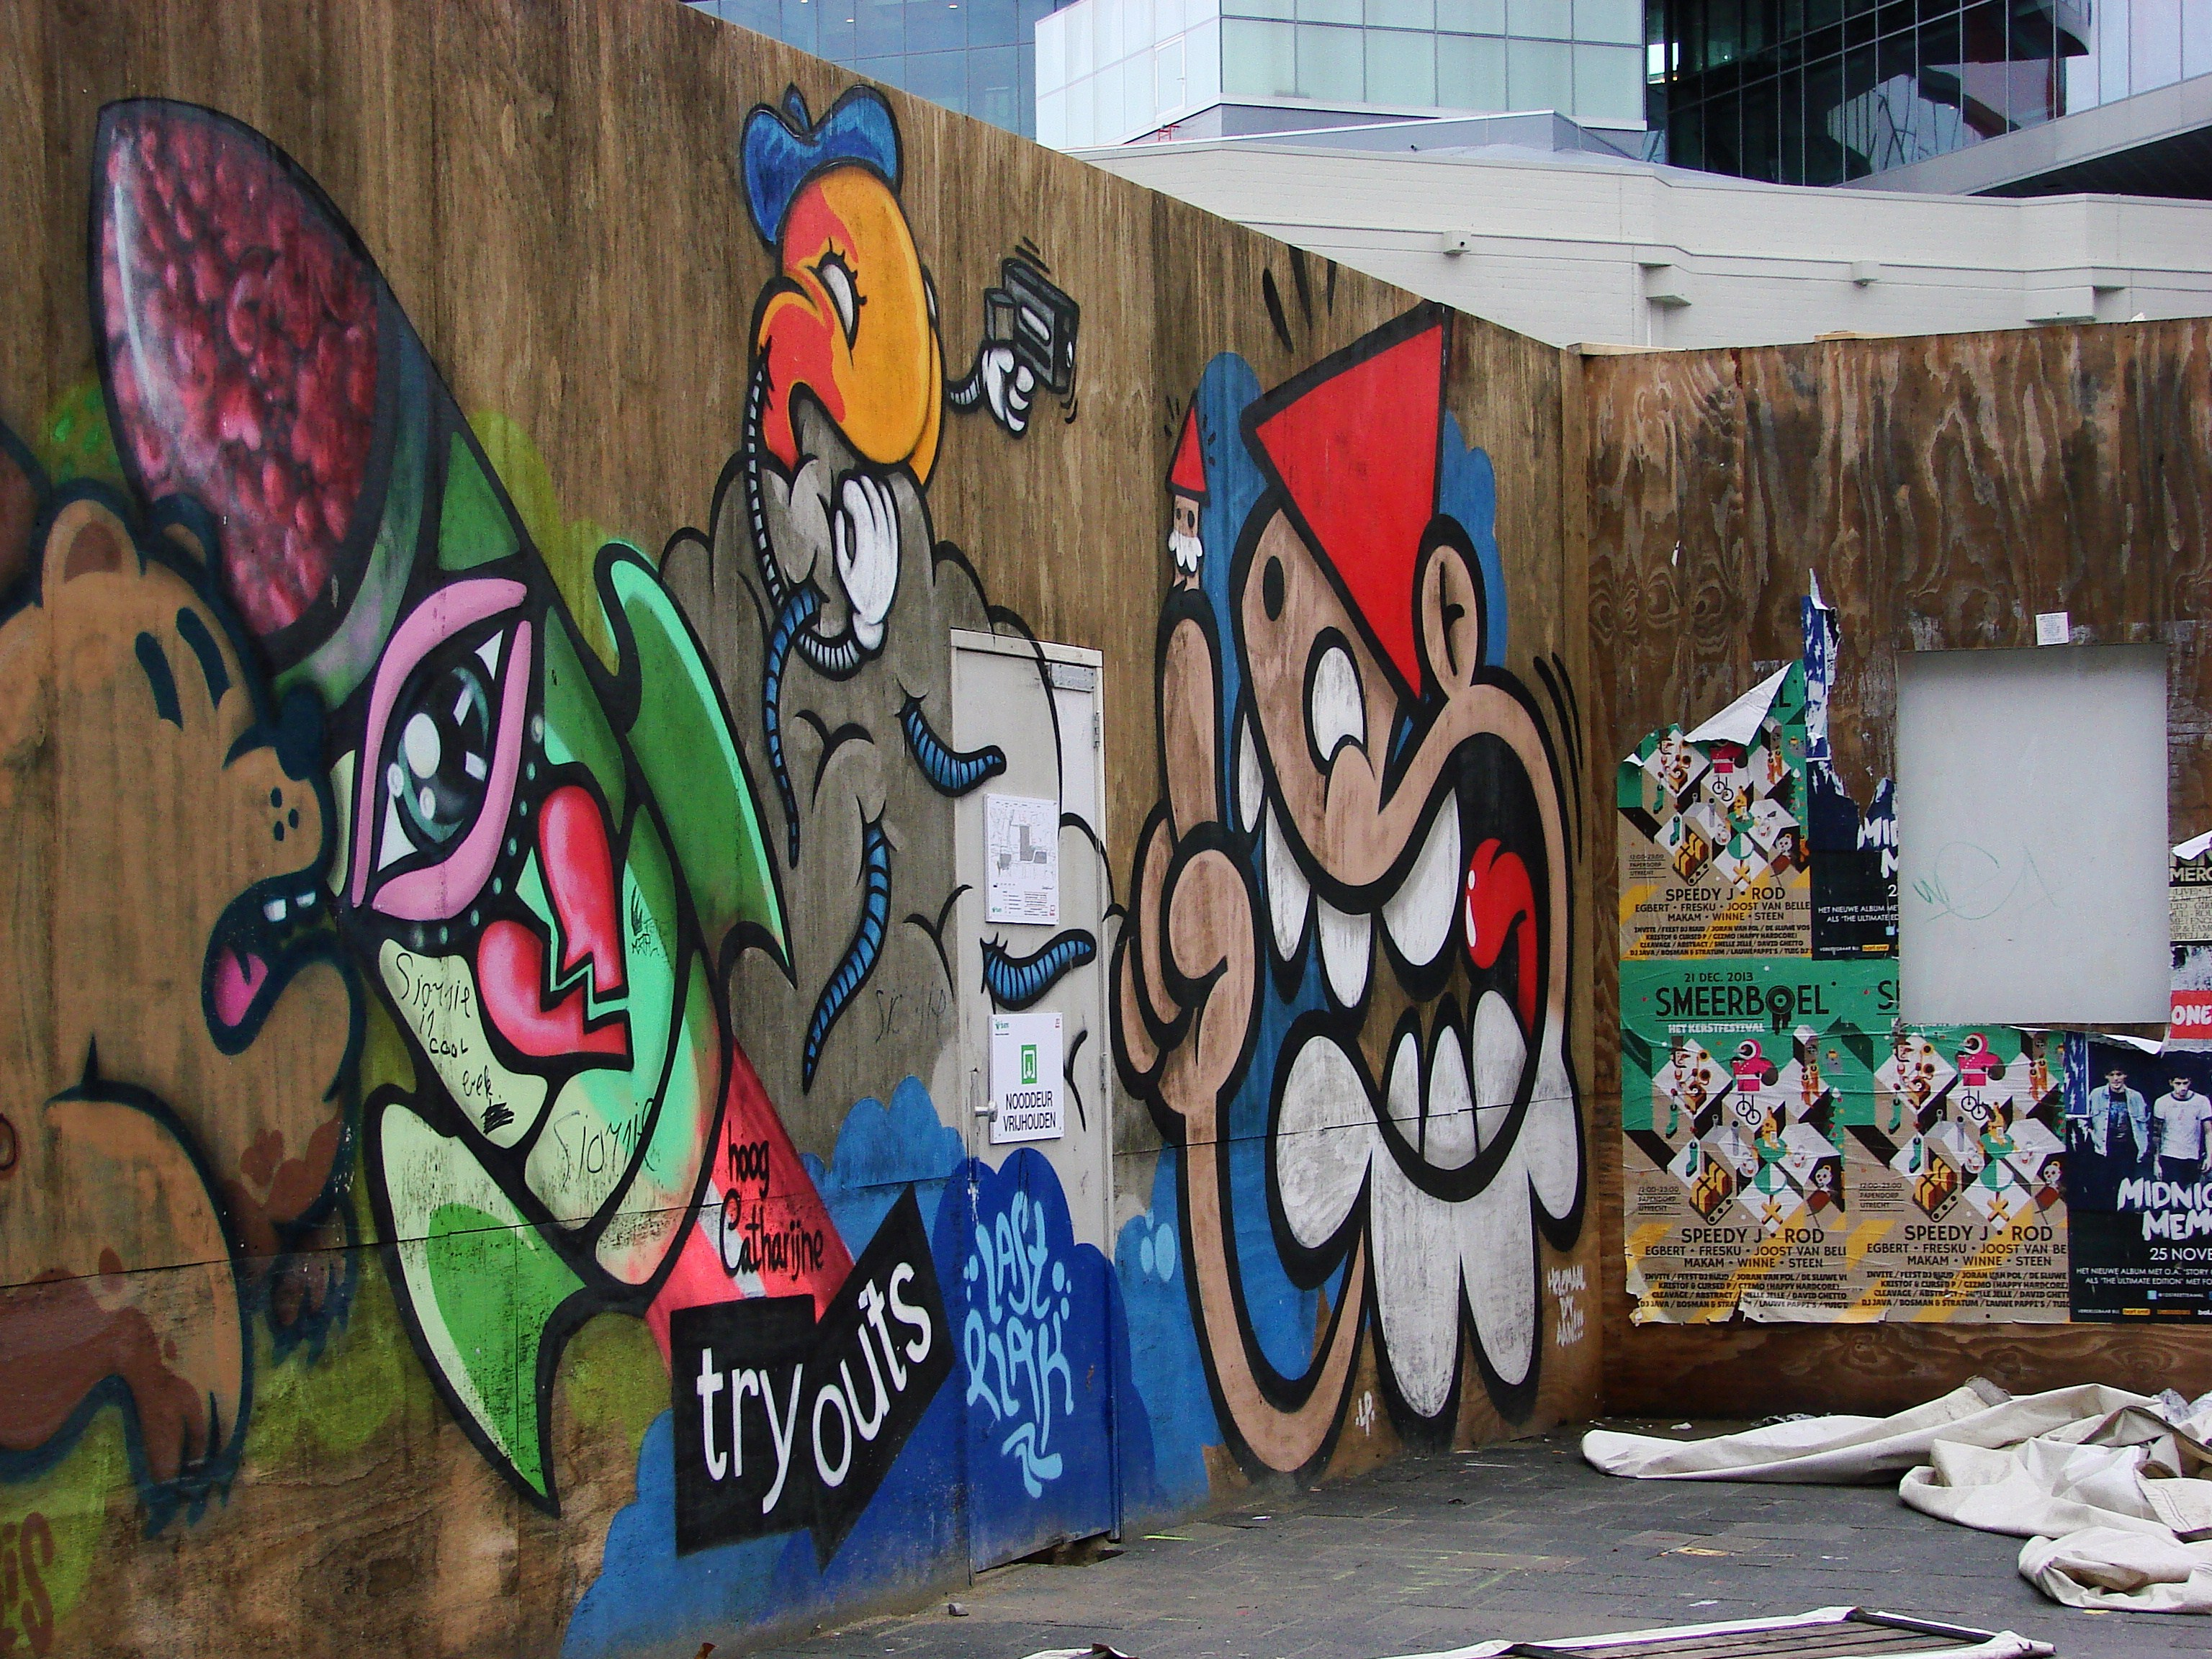 Graffiti wall utrecht - The Rest Of His Out Of This World Companions Can Be Seen From Right To Left And Represent A Few Other Utrecht Symbols And Institutions